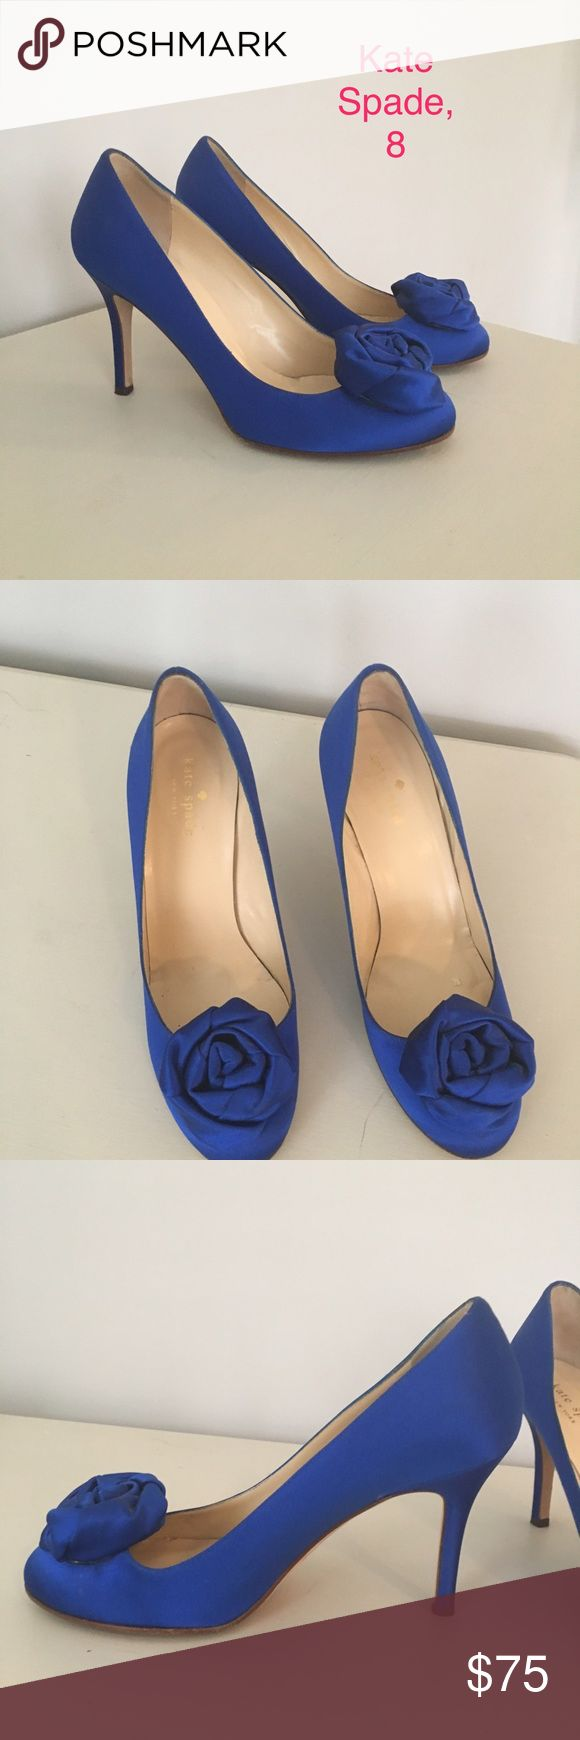 Kate Spade shoes Kate Spade blue satin shoes, size 8. Worn on my wedding day, that's it! kate spade Shoes Heels